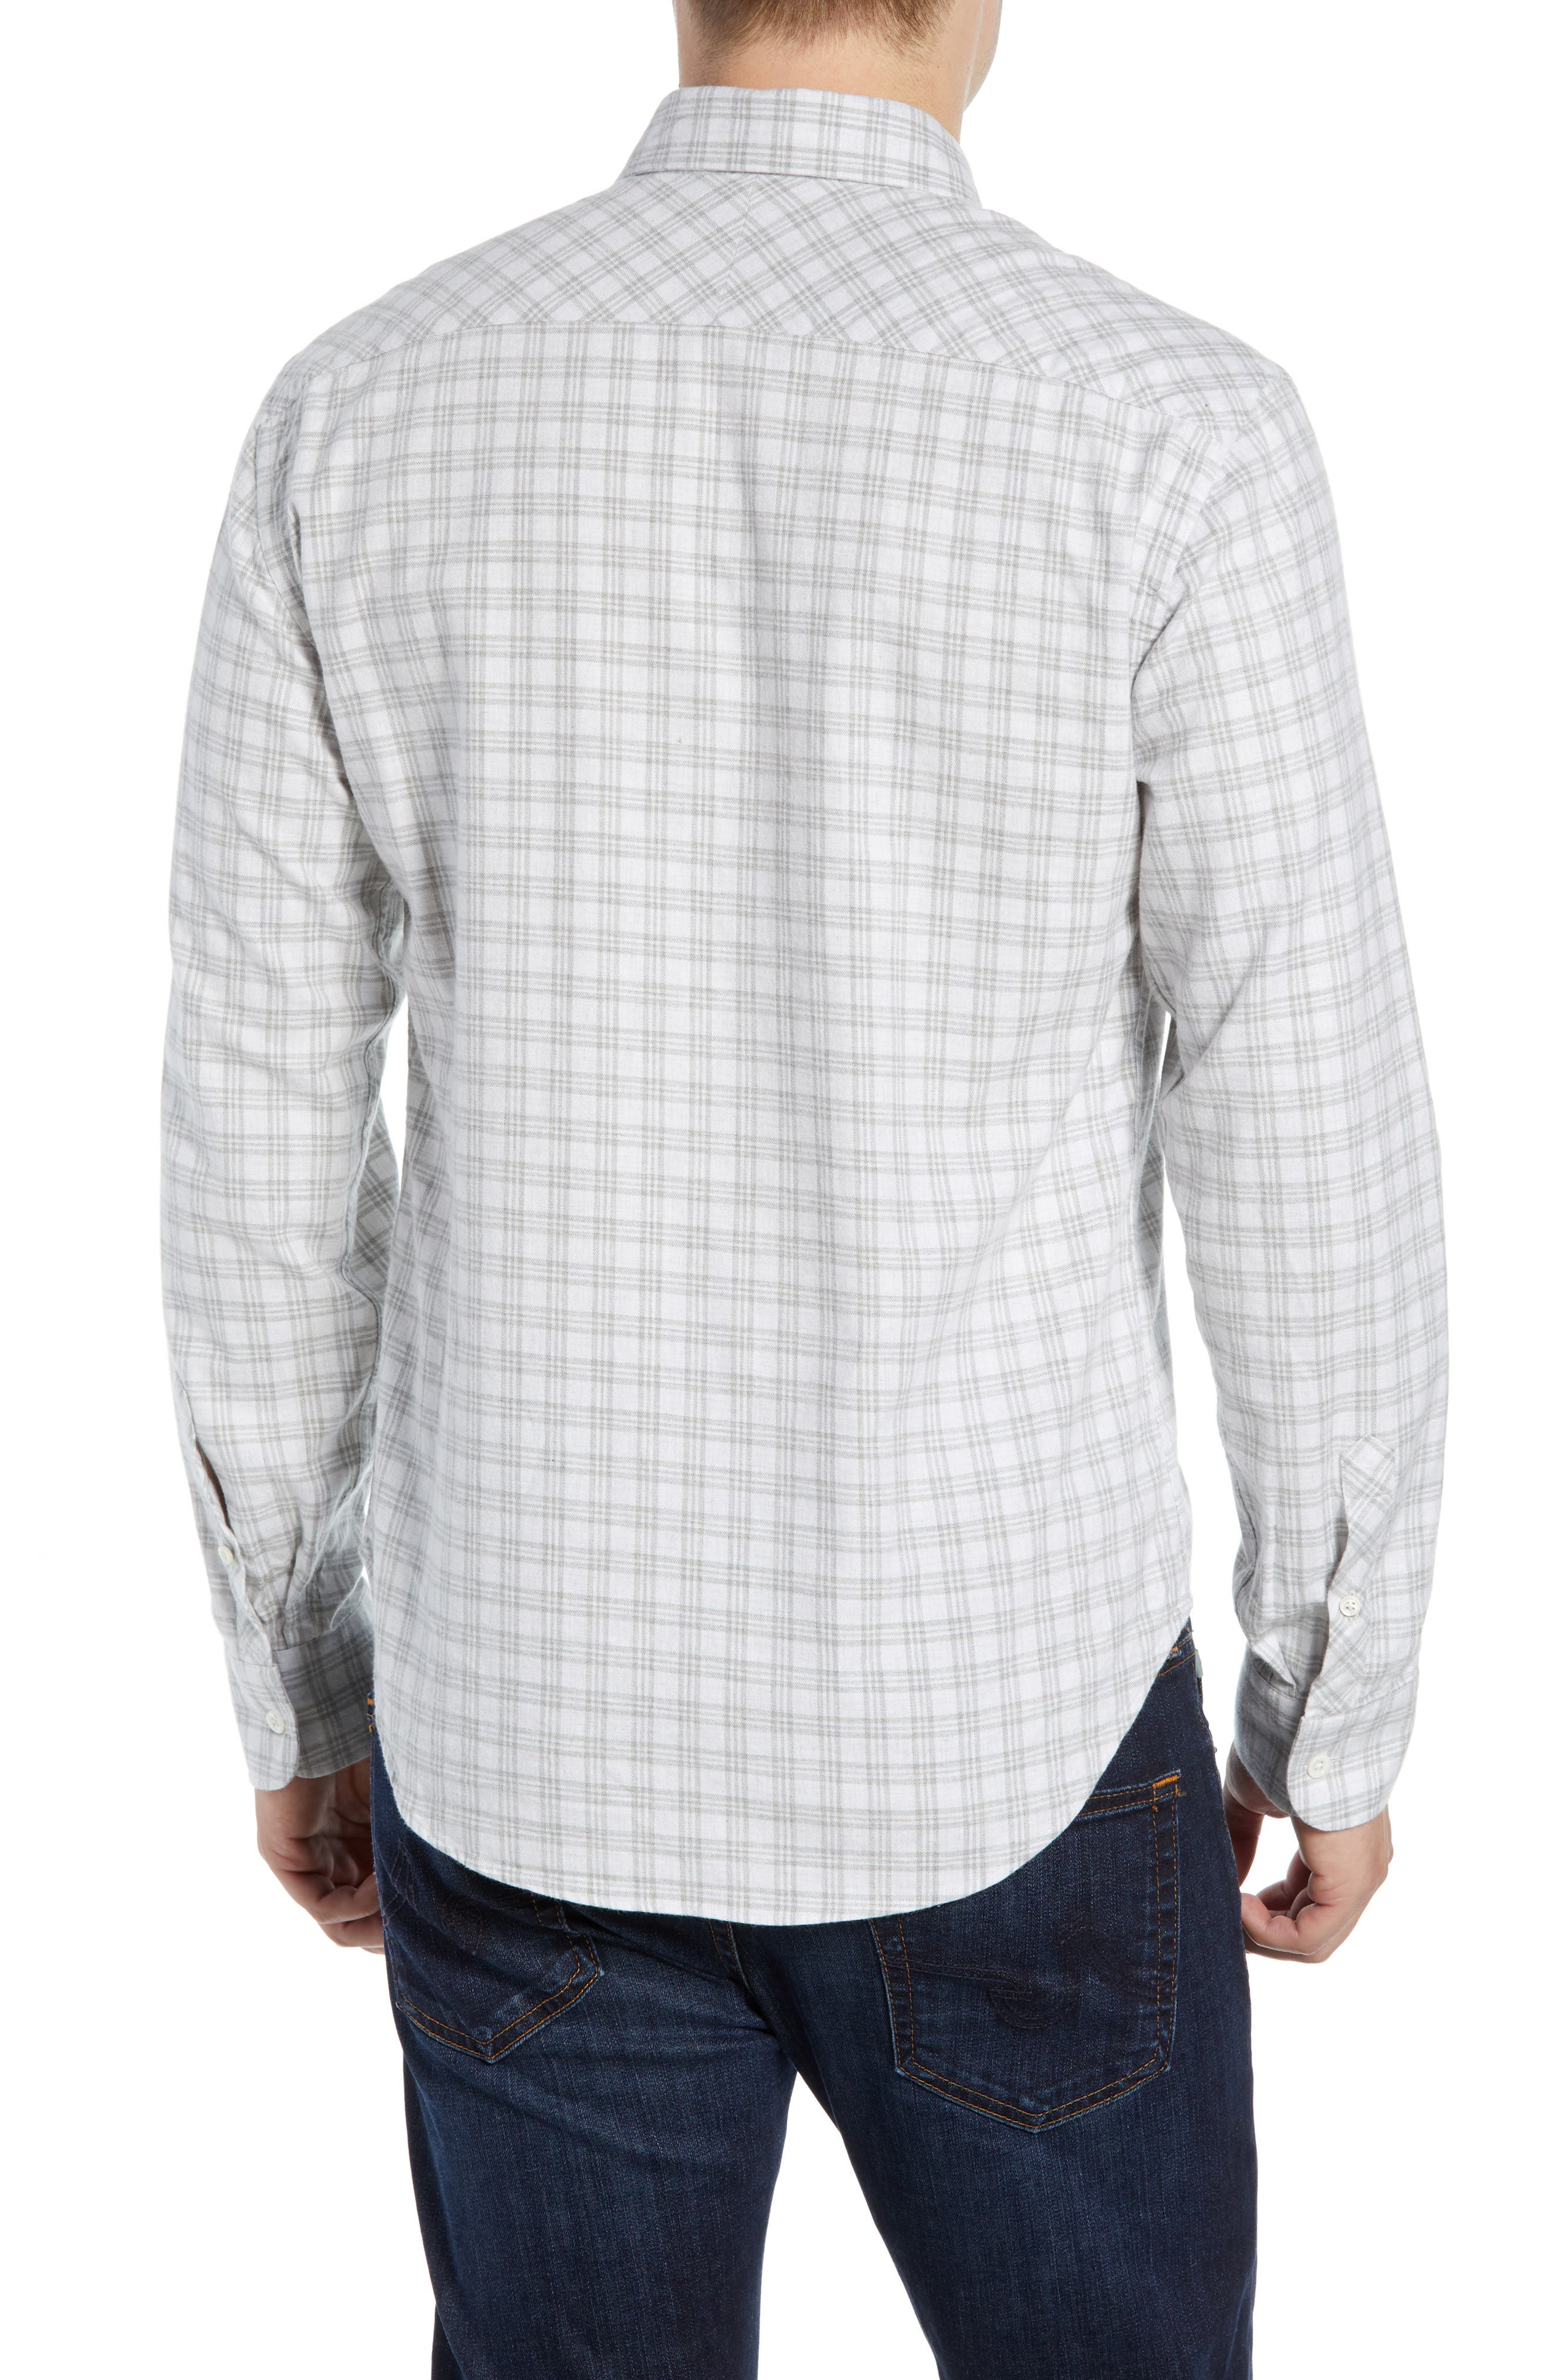 Kirby Slim Fit Check Sport Shirt,                             Alternate thumbnail 3, color,                             LIGHT GREY/ NATURAL